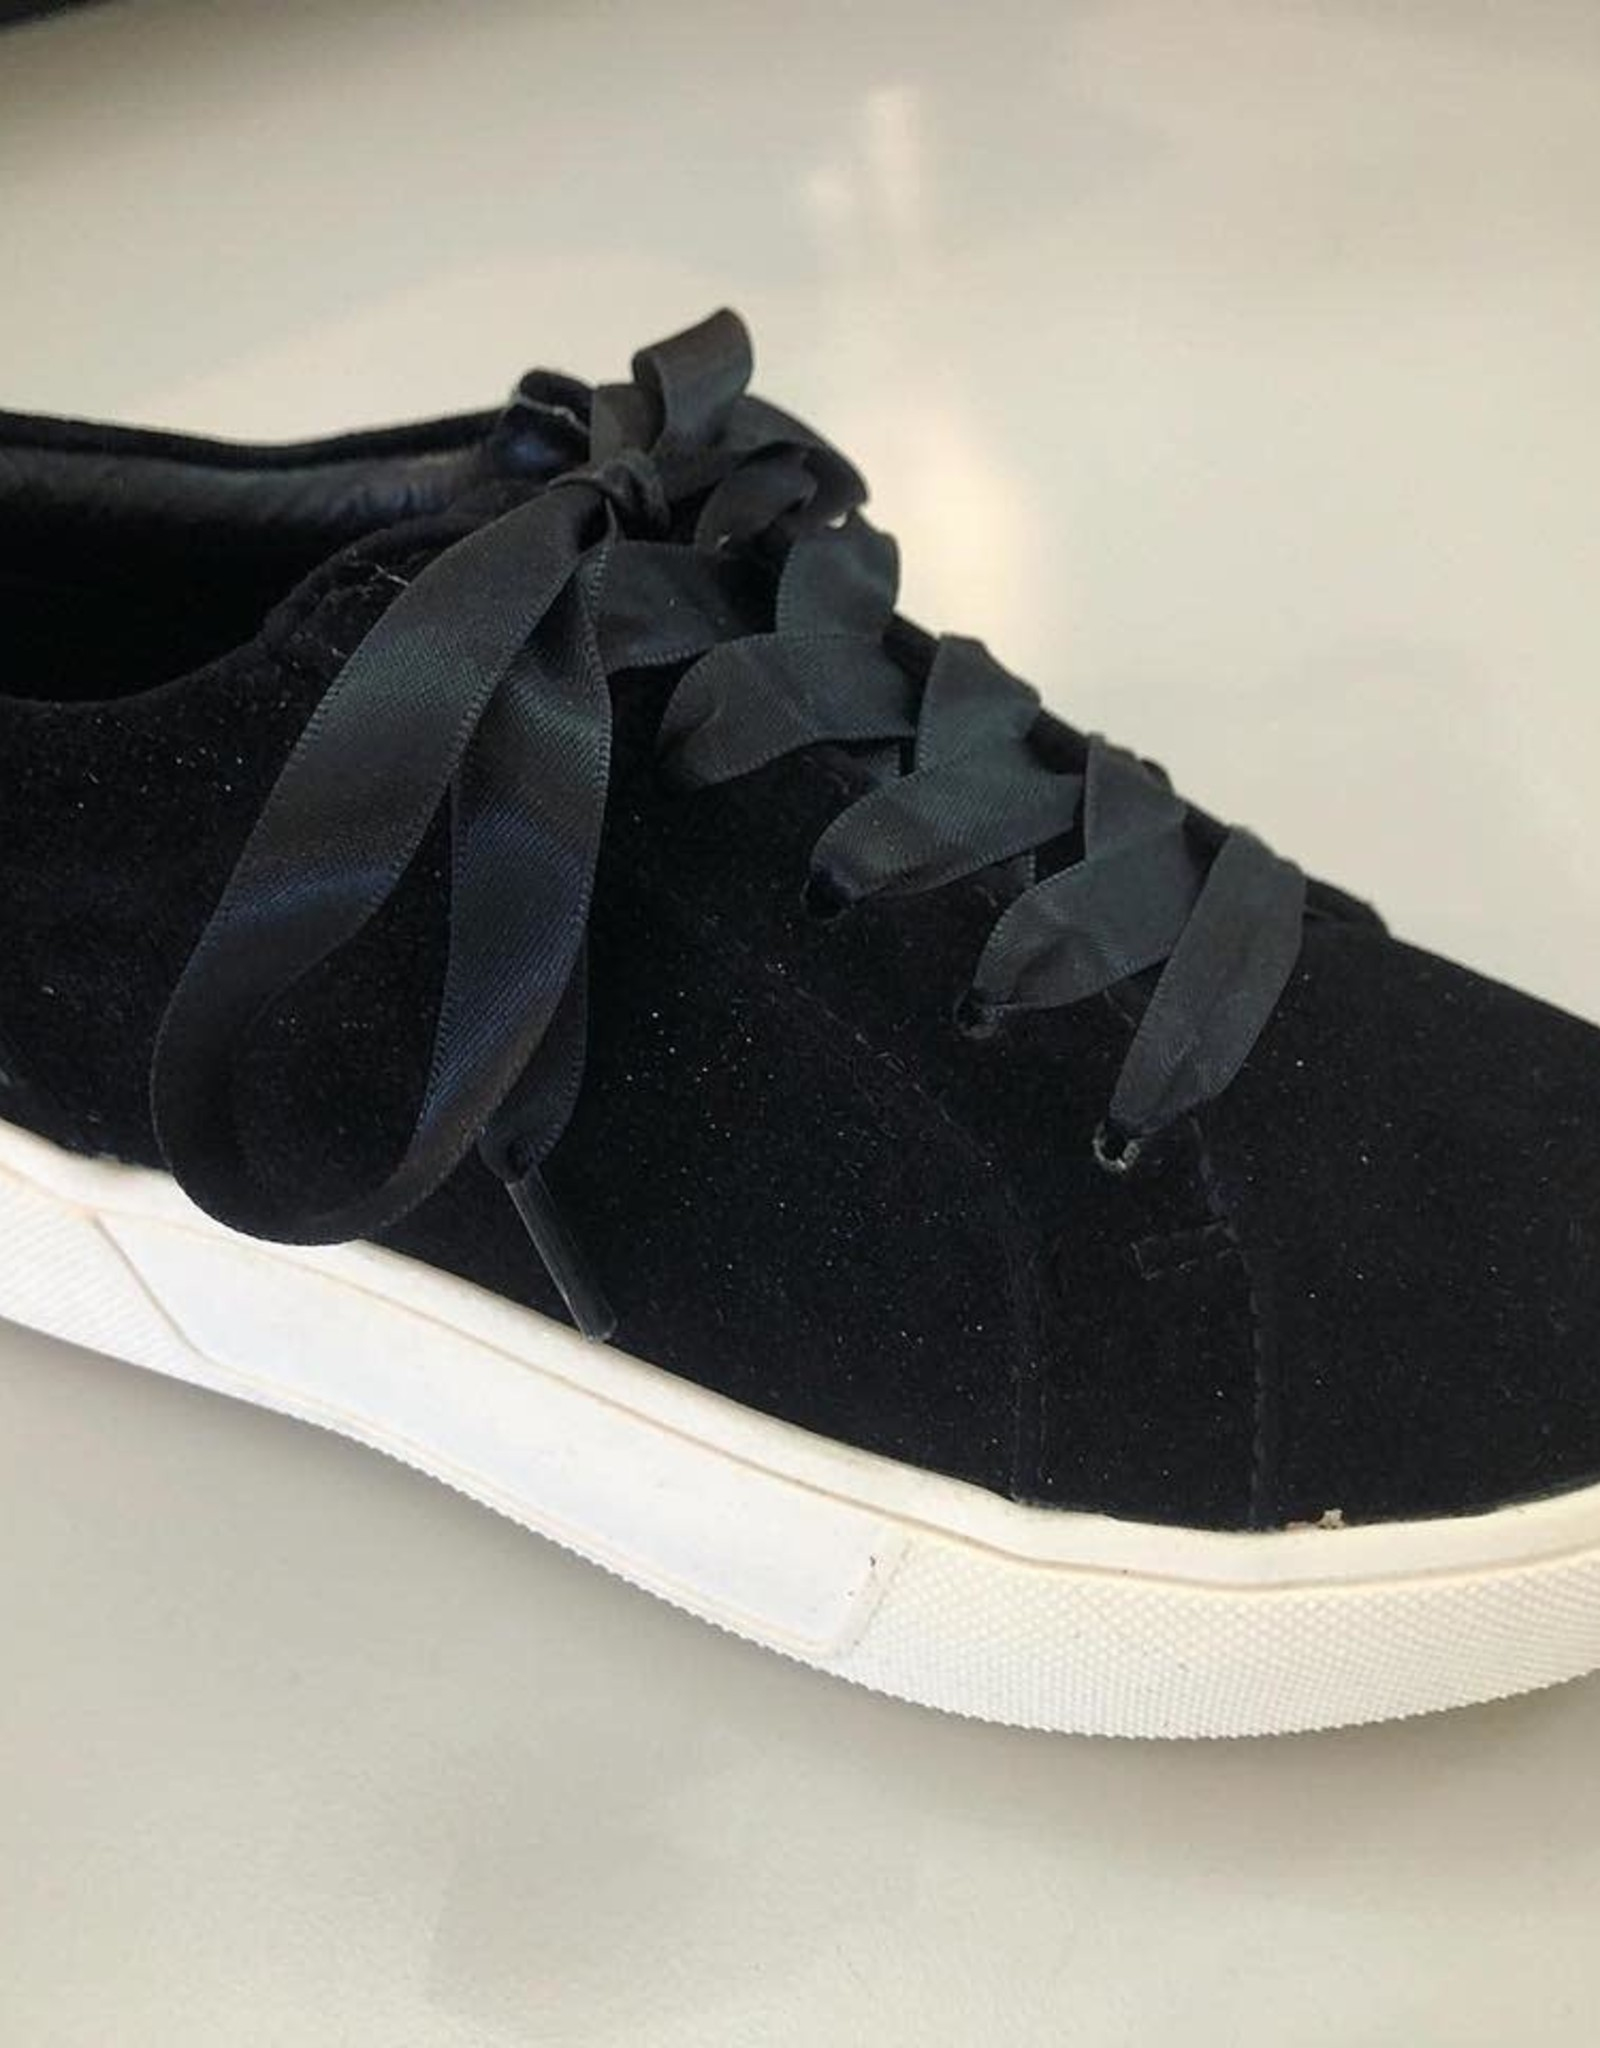 Volatile Tripp Velvet Lace Up Sneaker in Black